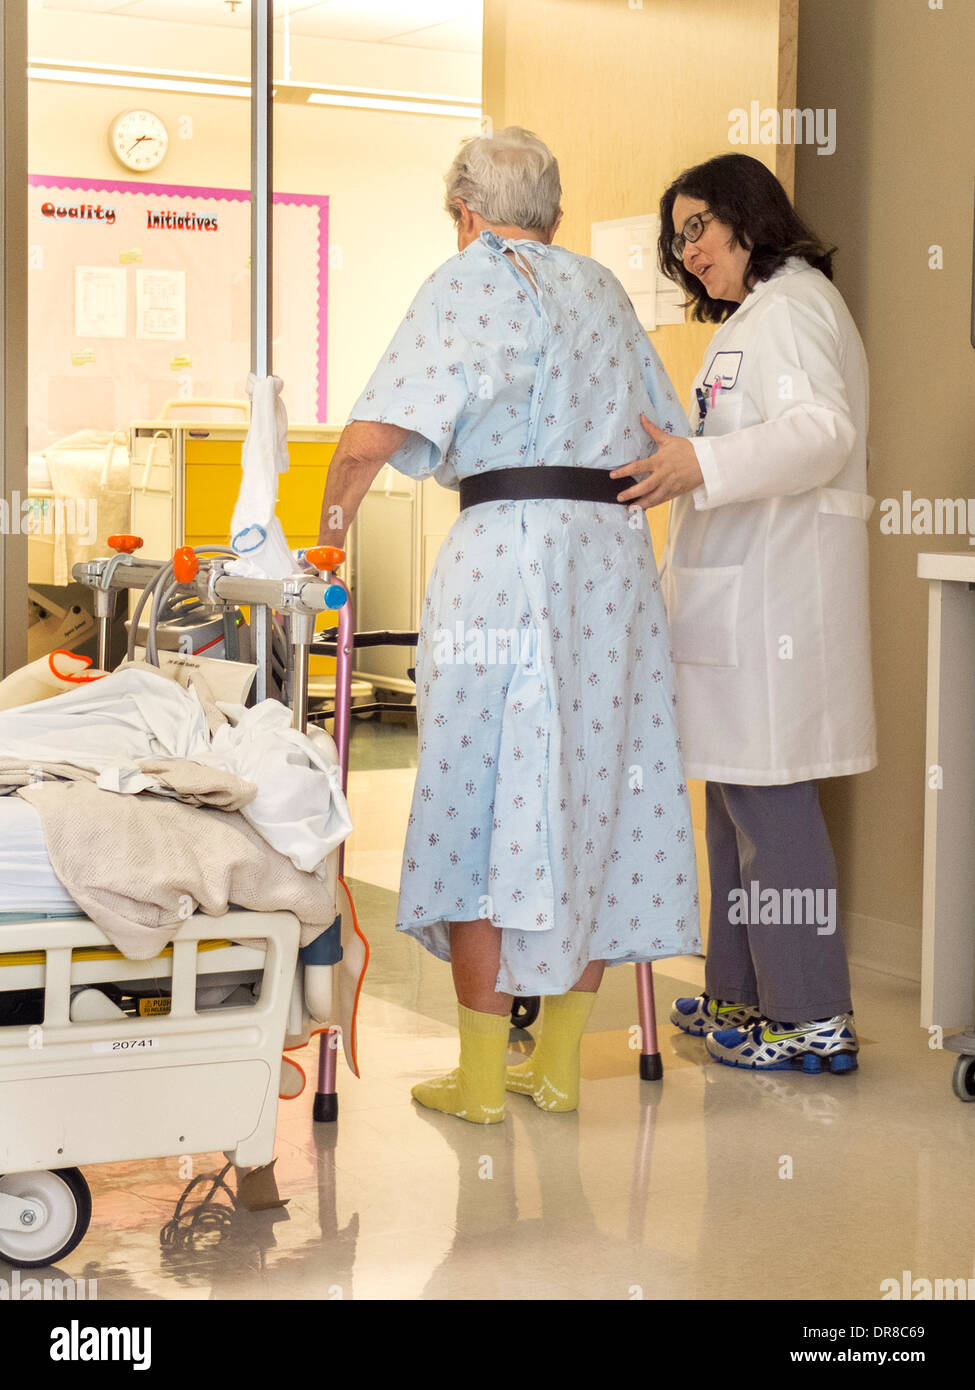 California physical therapy - A Physical Therapist Helps A Hip Surgery Patient Use A Walker In A Southern California Hospital